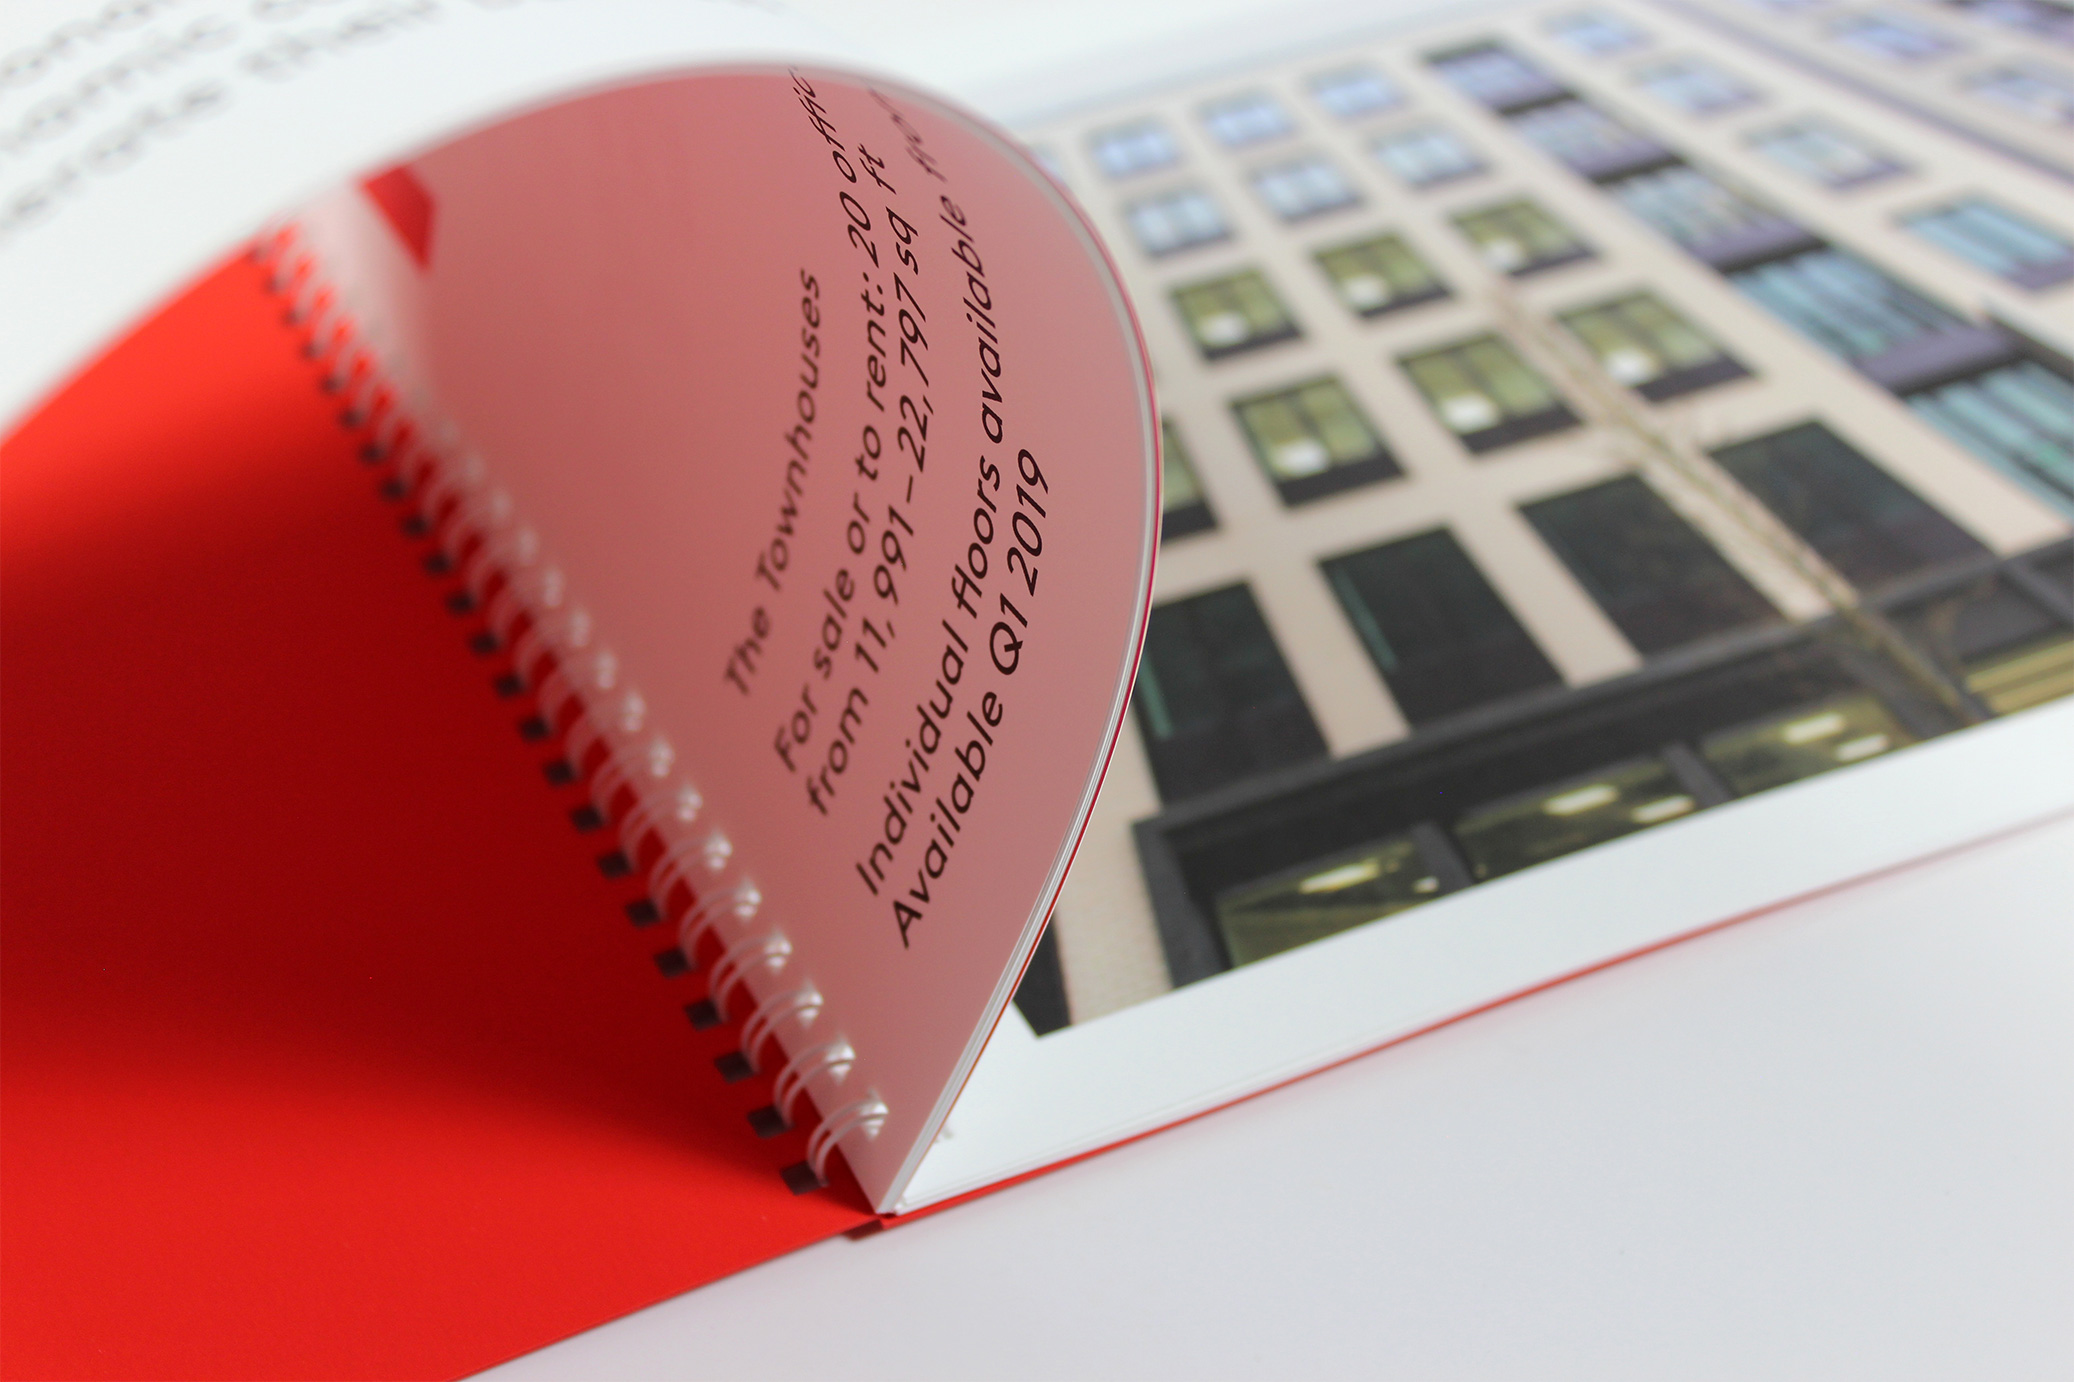 Printed Wiro-bound corporate promotional brochure for RAD - showing the binding, text pages and red card front cover